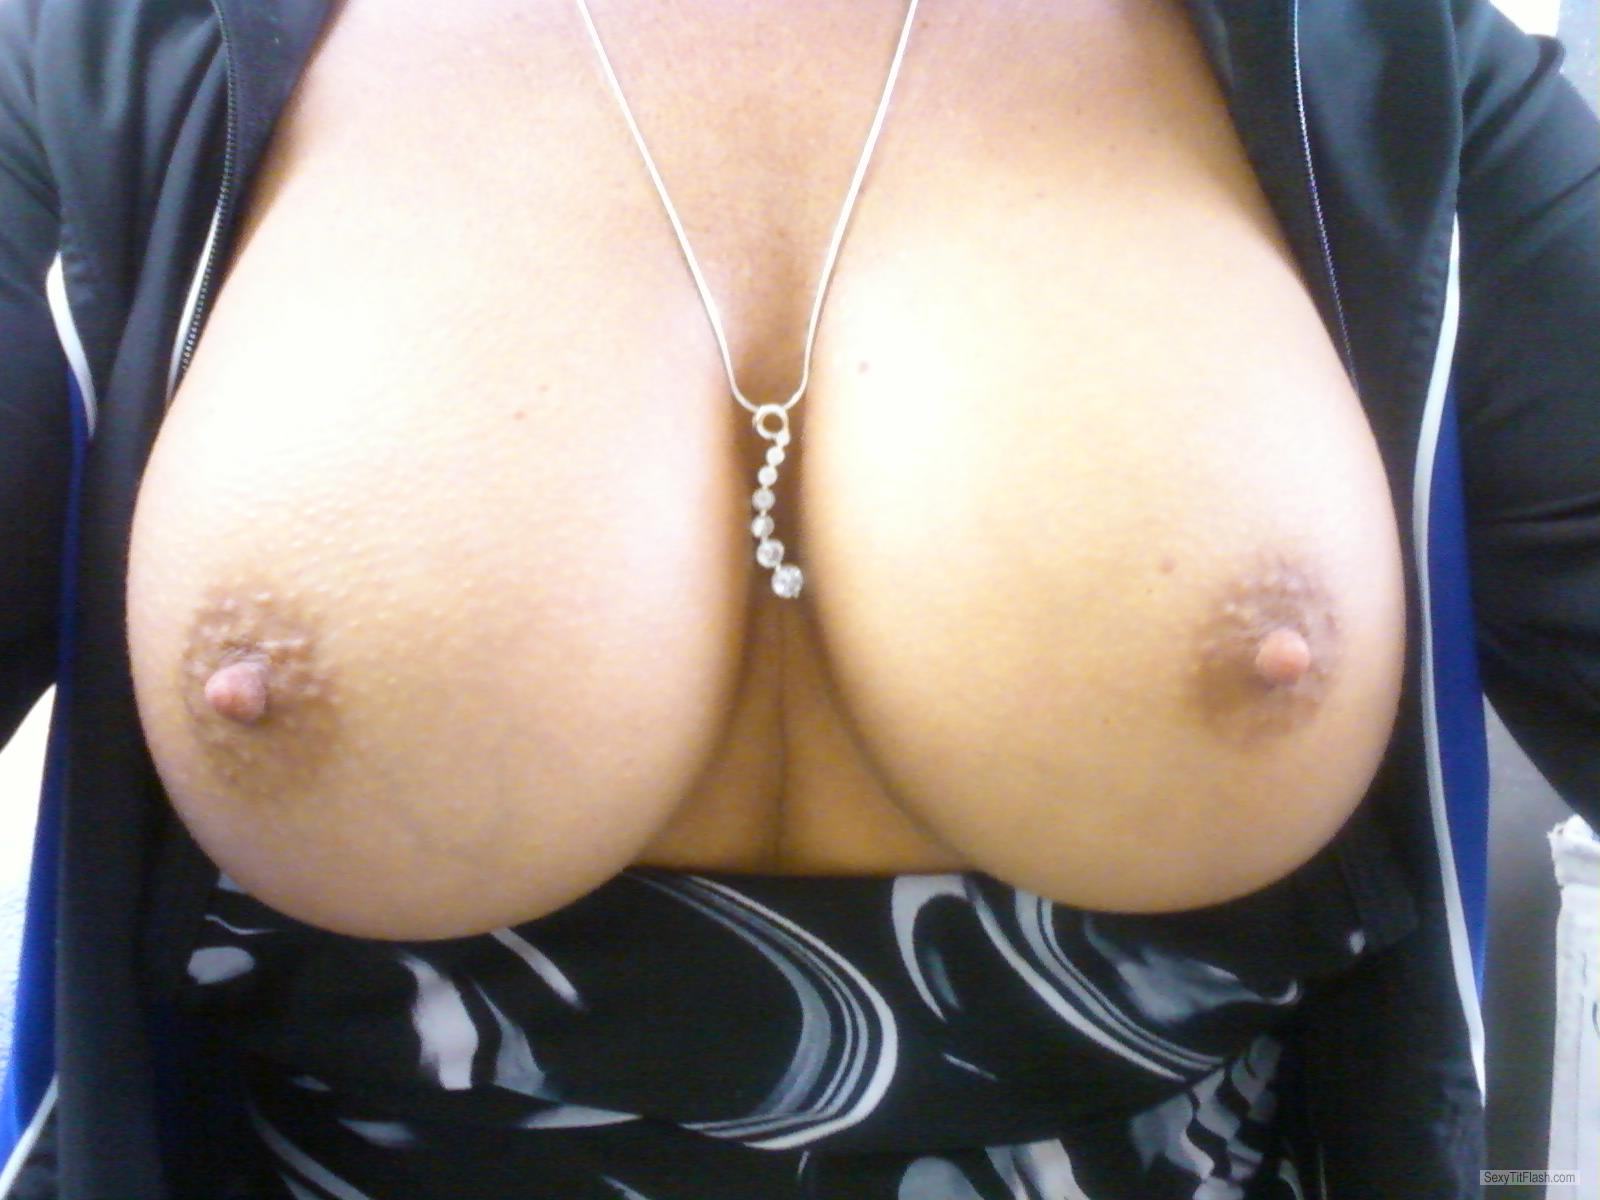 Tit Flash: My Big Tits - Fun Girls from United States